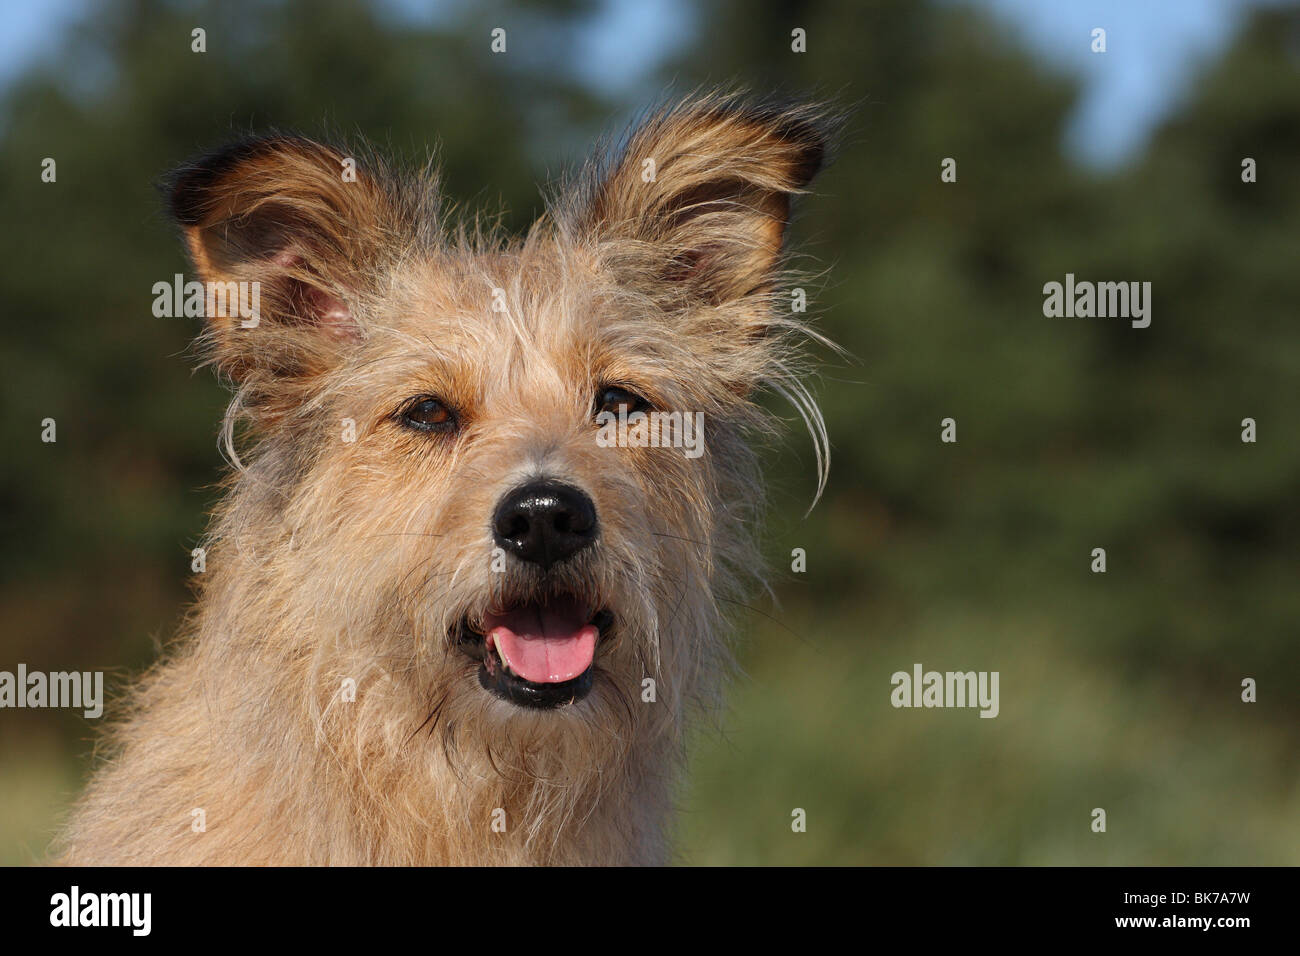 Irish-Terrier-Mongrel - Stock Image